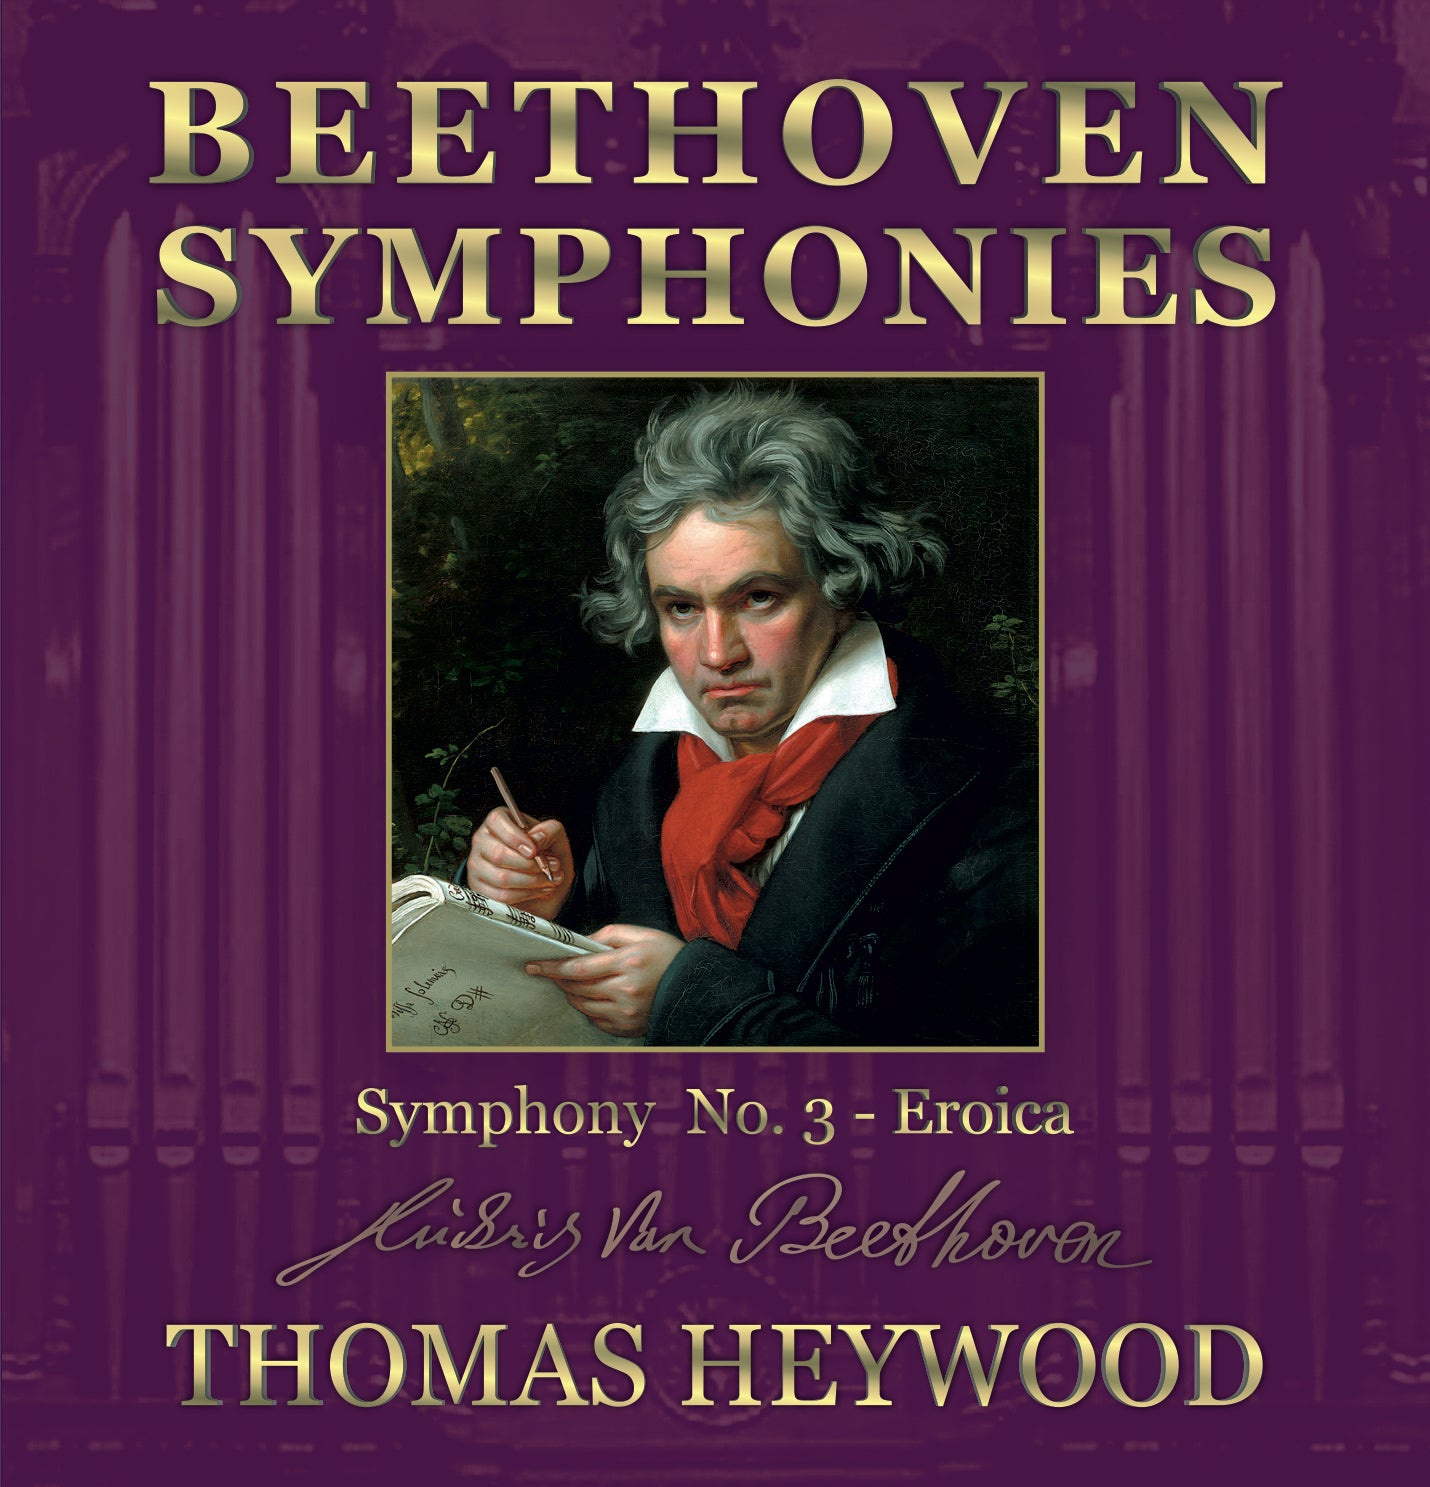 Beethoven/Heywood - Symphony No. 3 - 'Eroica'